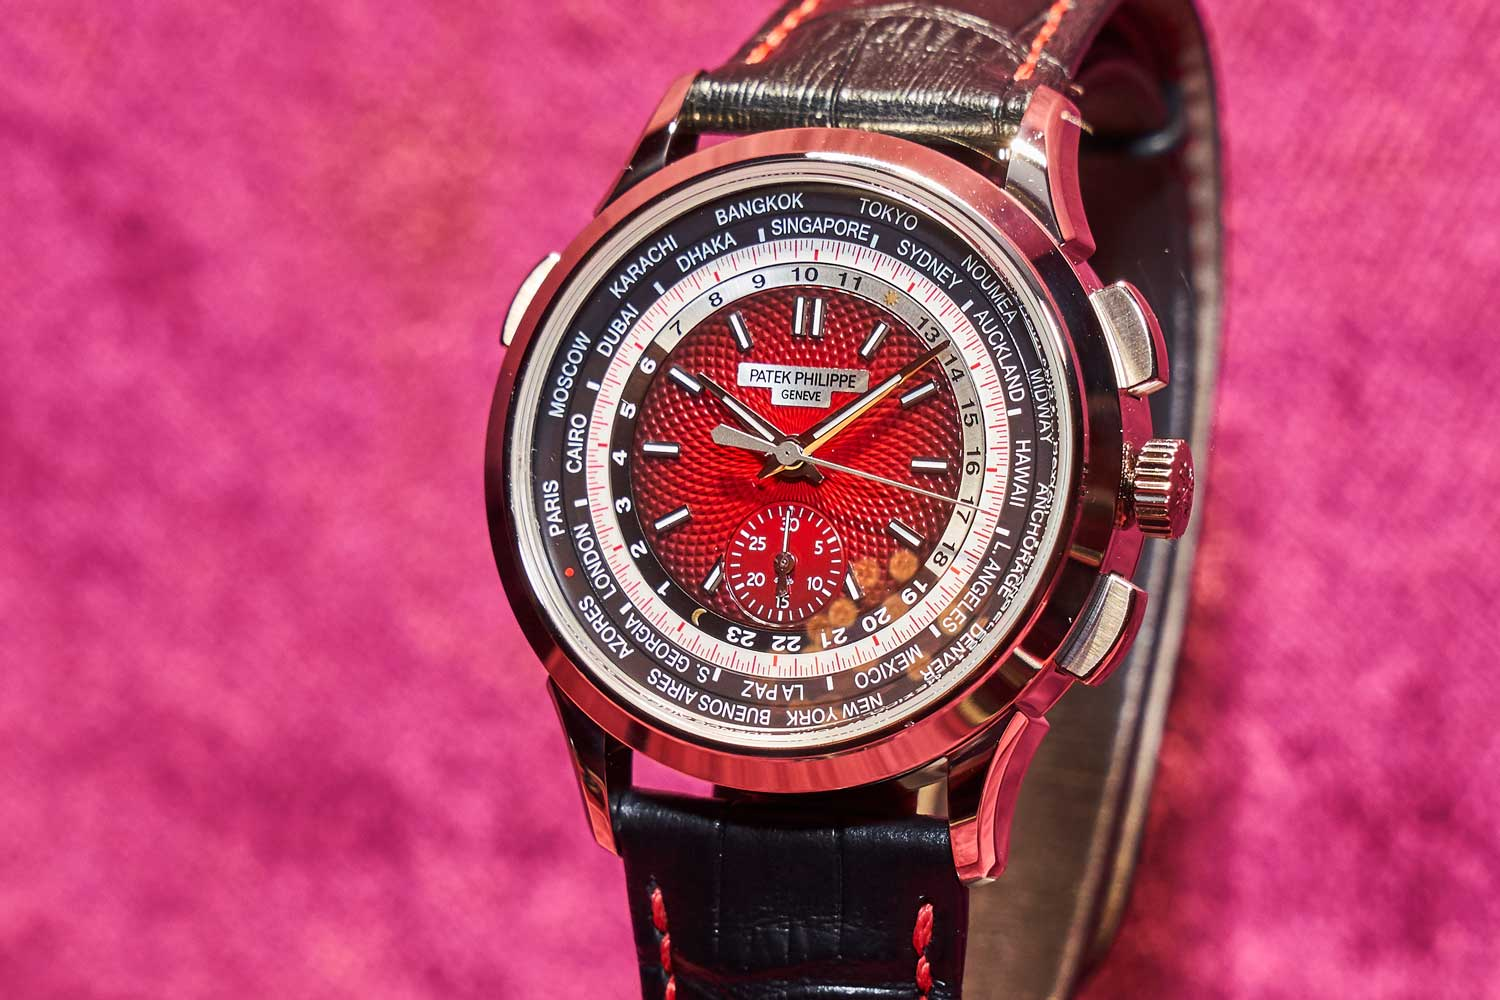 Ref. 5930 – World Time Chronograph Singapore 2019 Special Edition. Limited to 300 pieces.